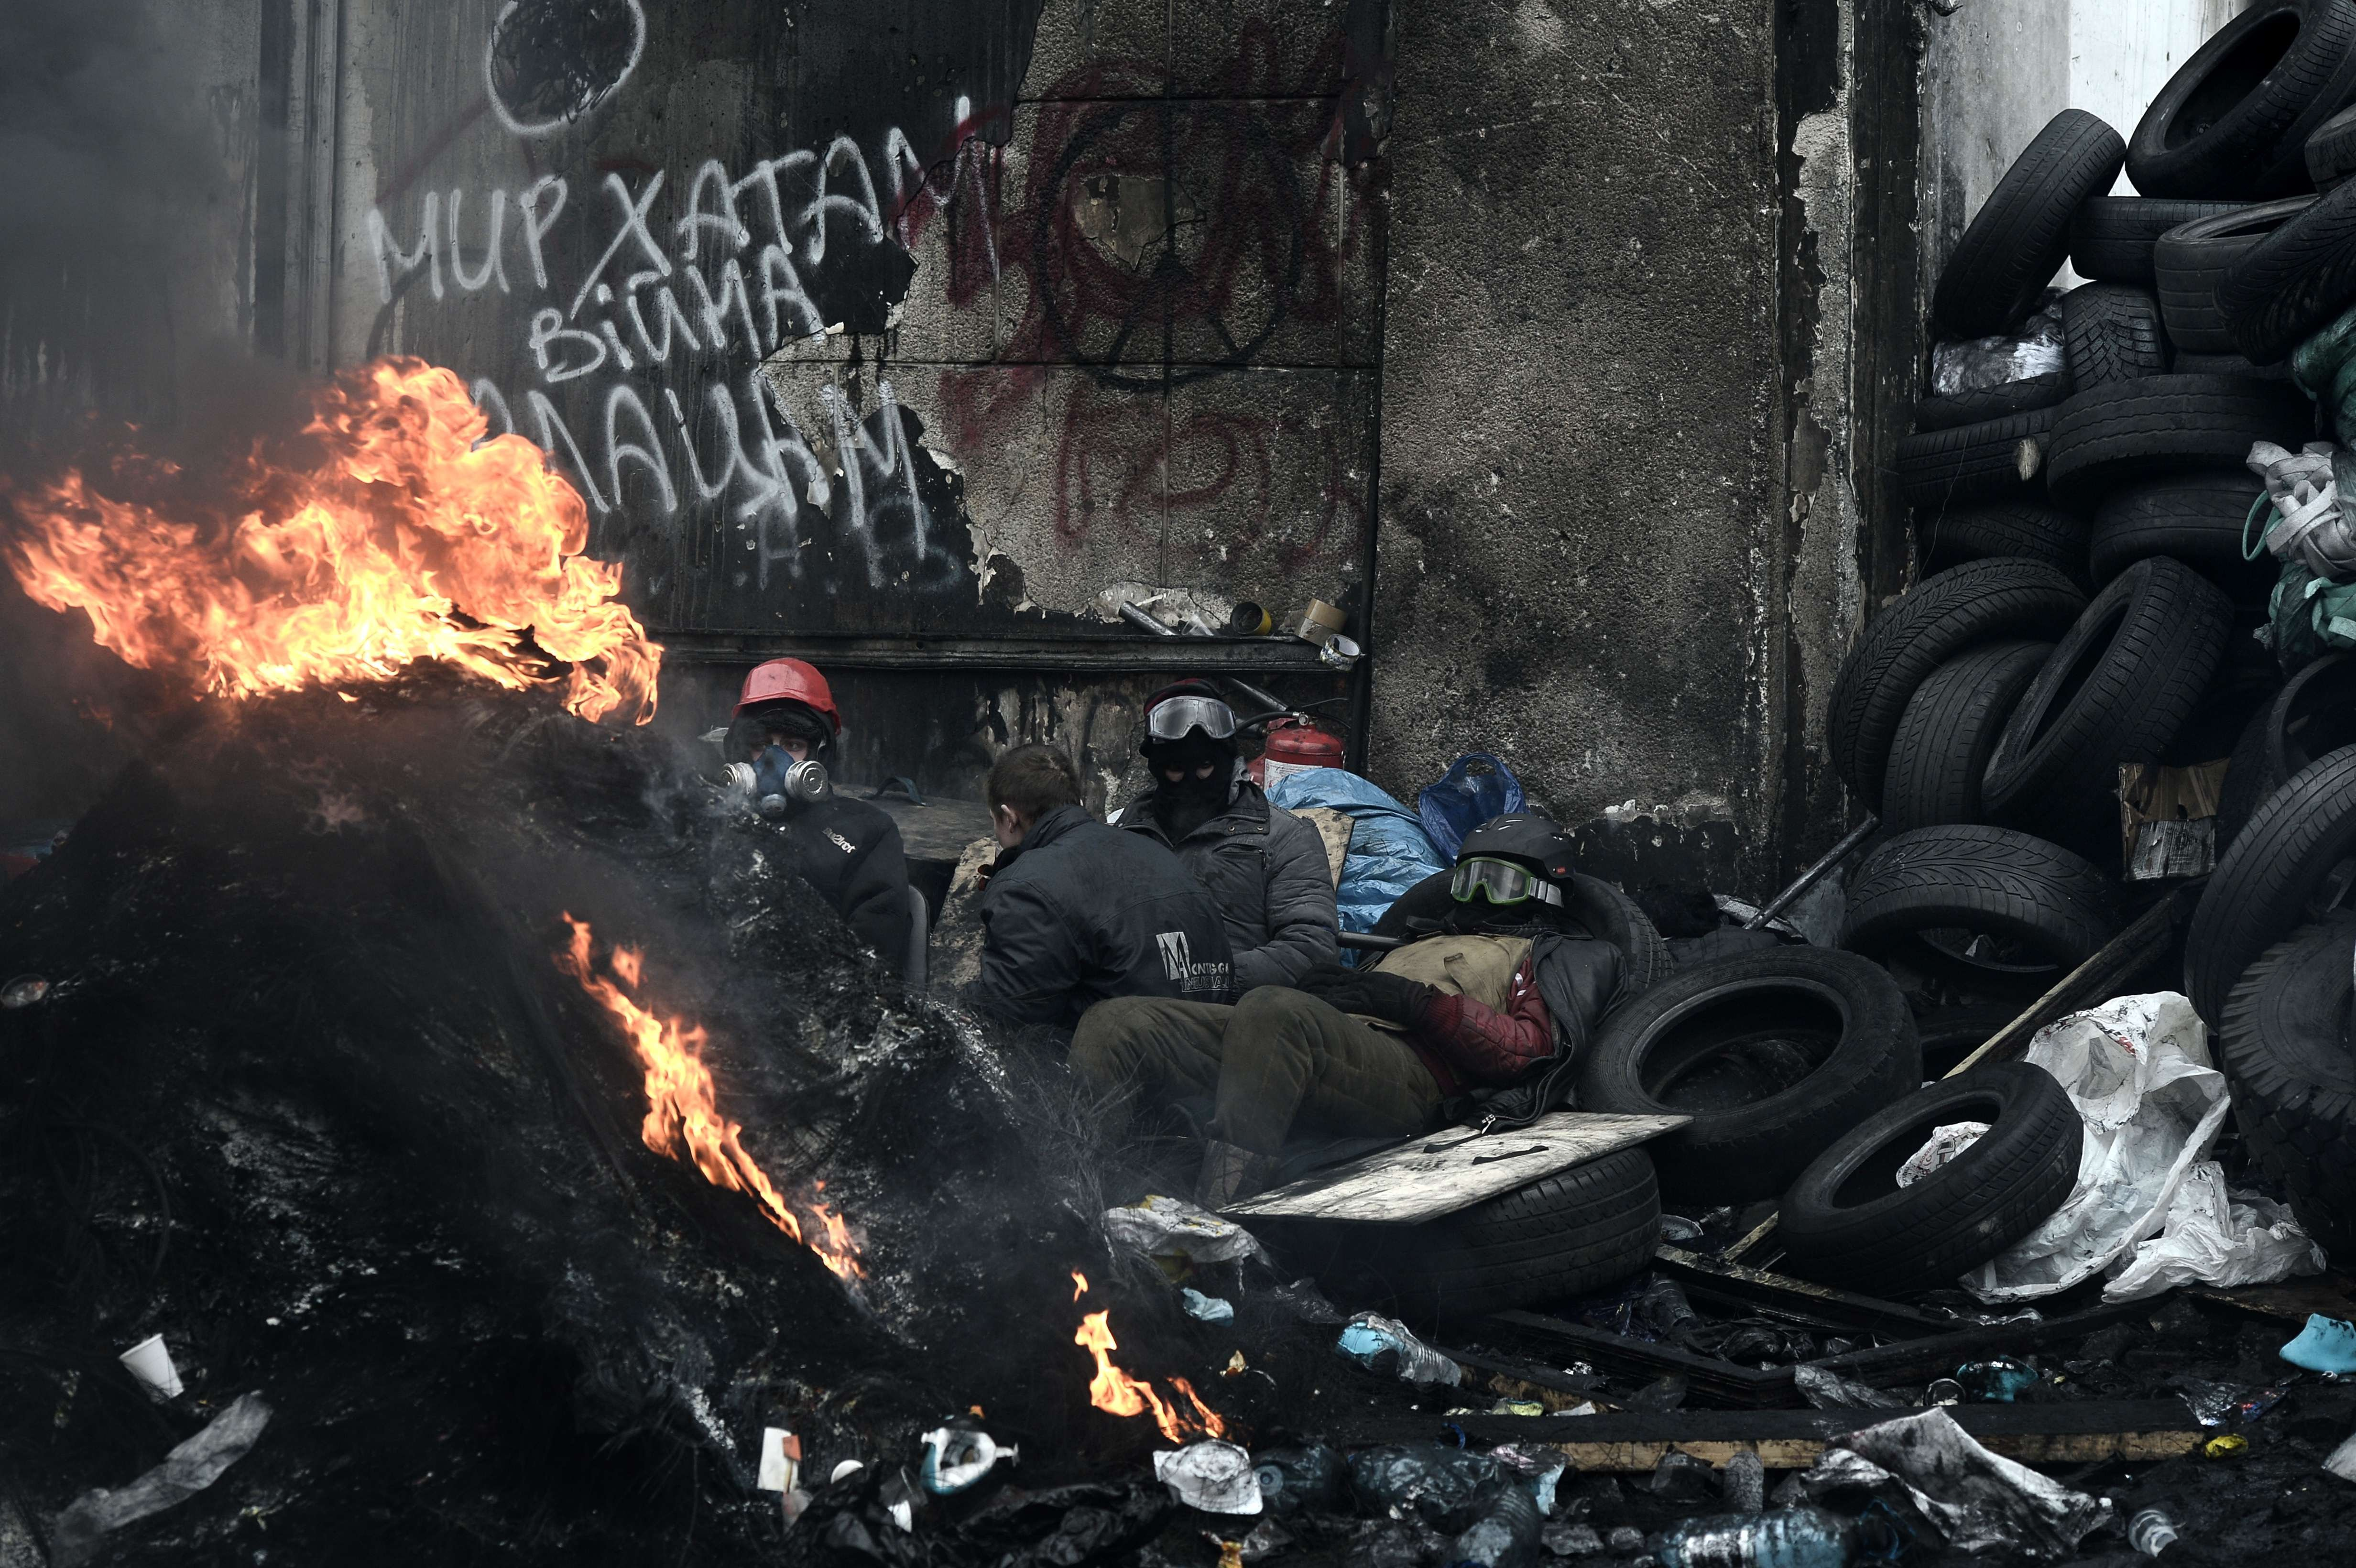 A anti-government protesters rest near a fire next to a road block in Kiev on Jan. 28, 2014.